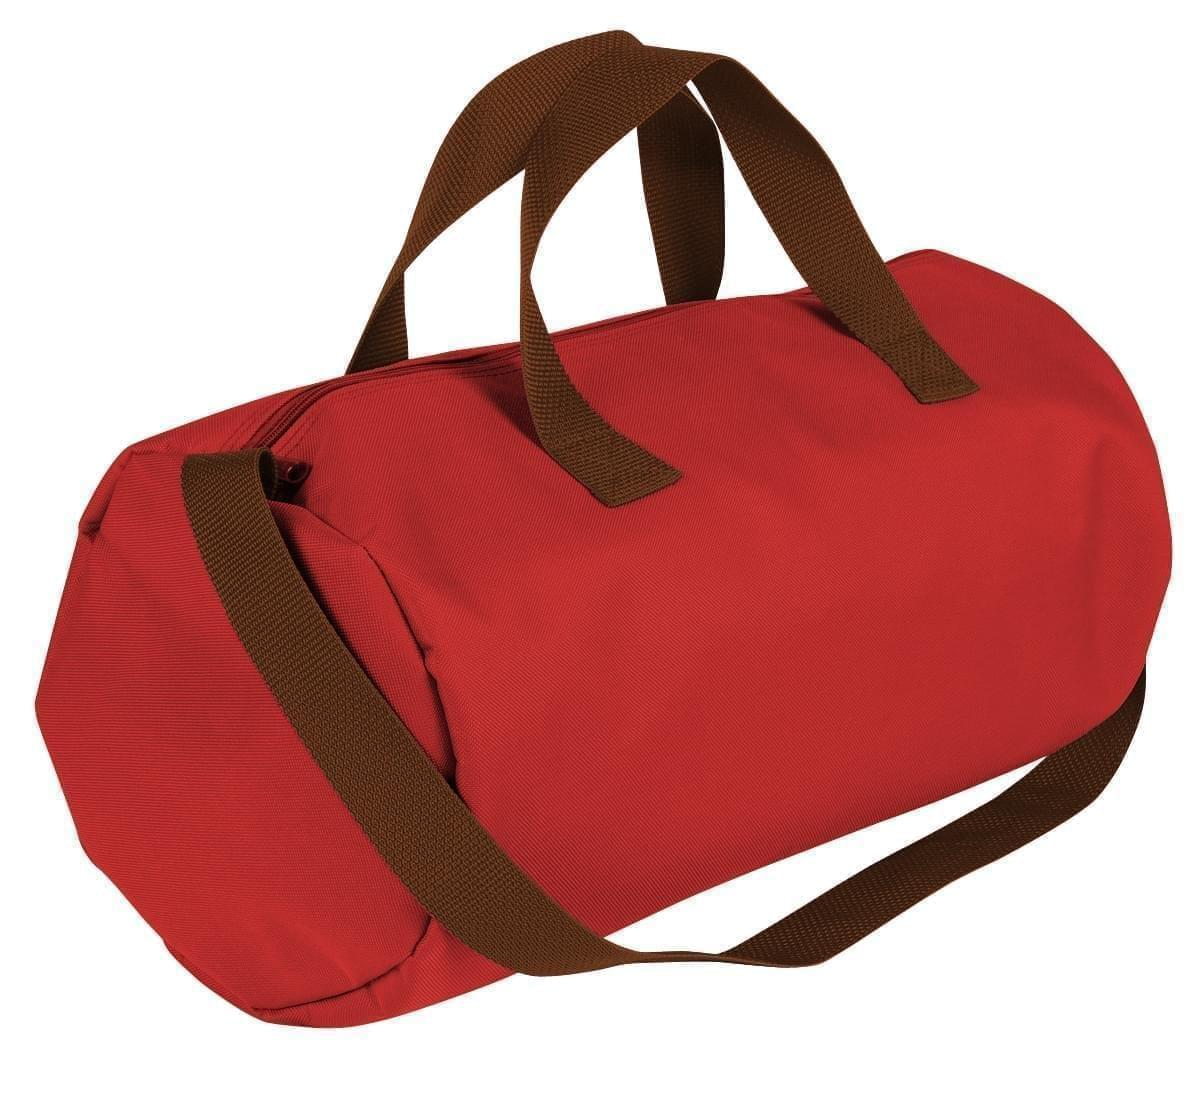 USA Made Nylon Poly Gym Roll Bags, Red-Brown, ROCX31AAZS